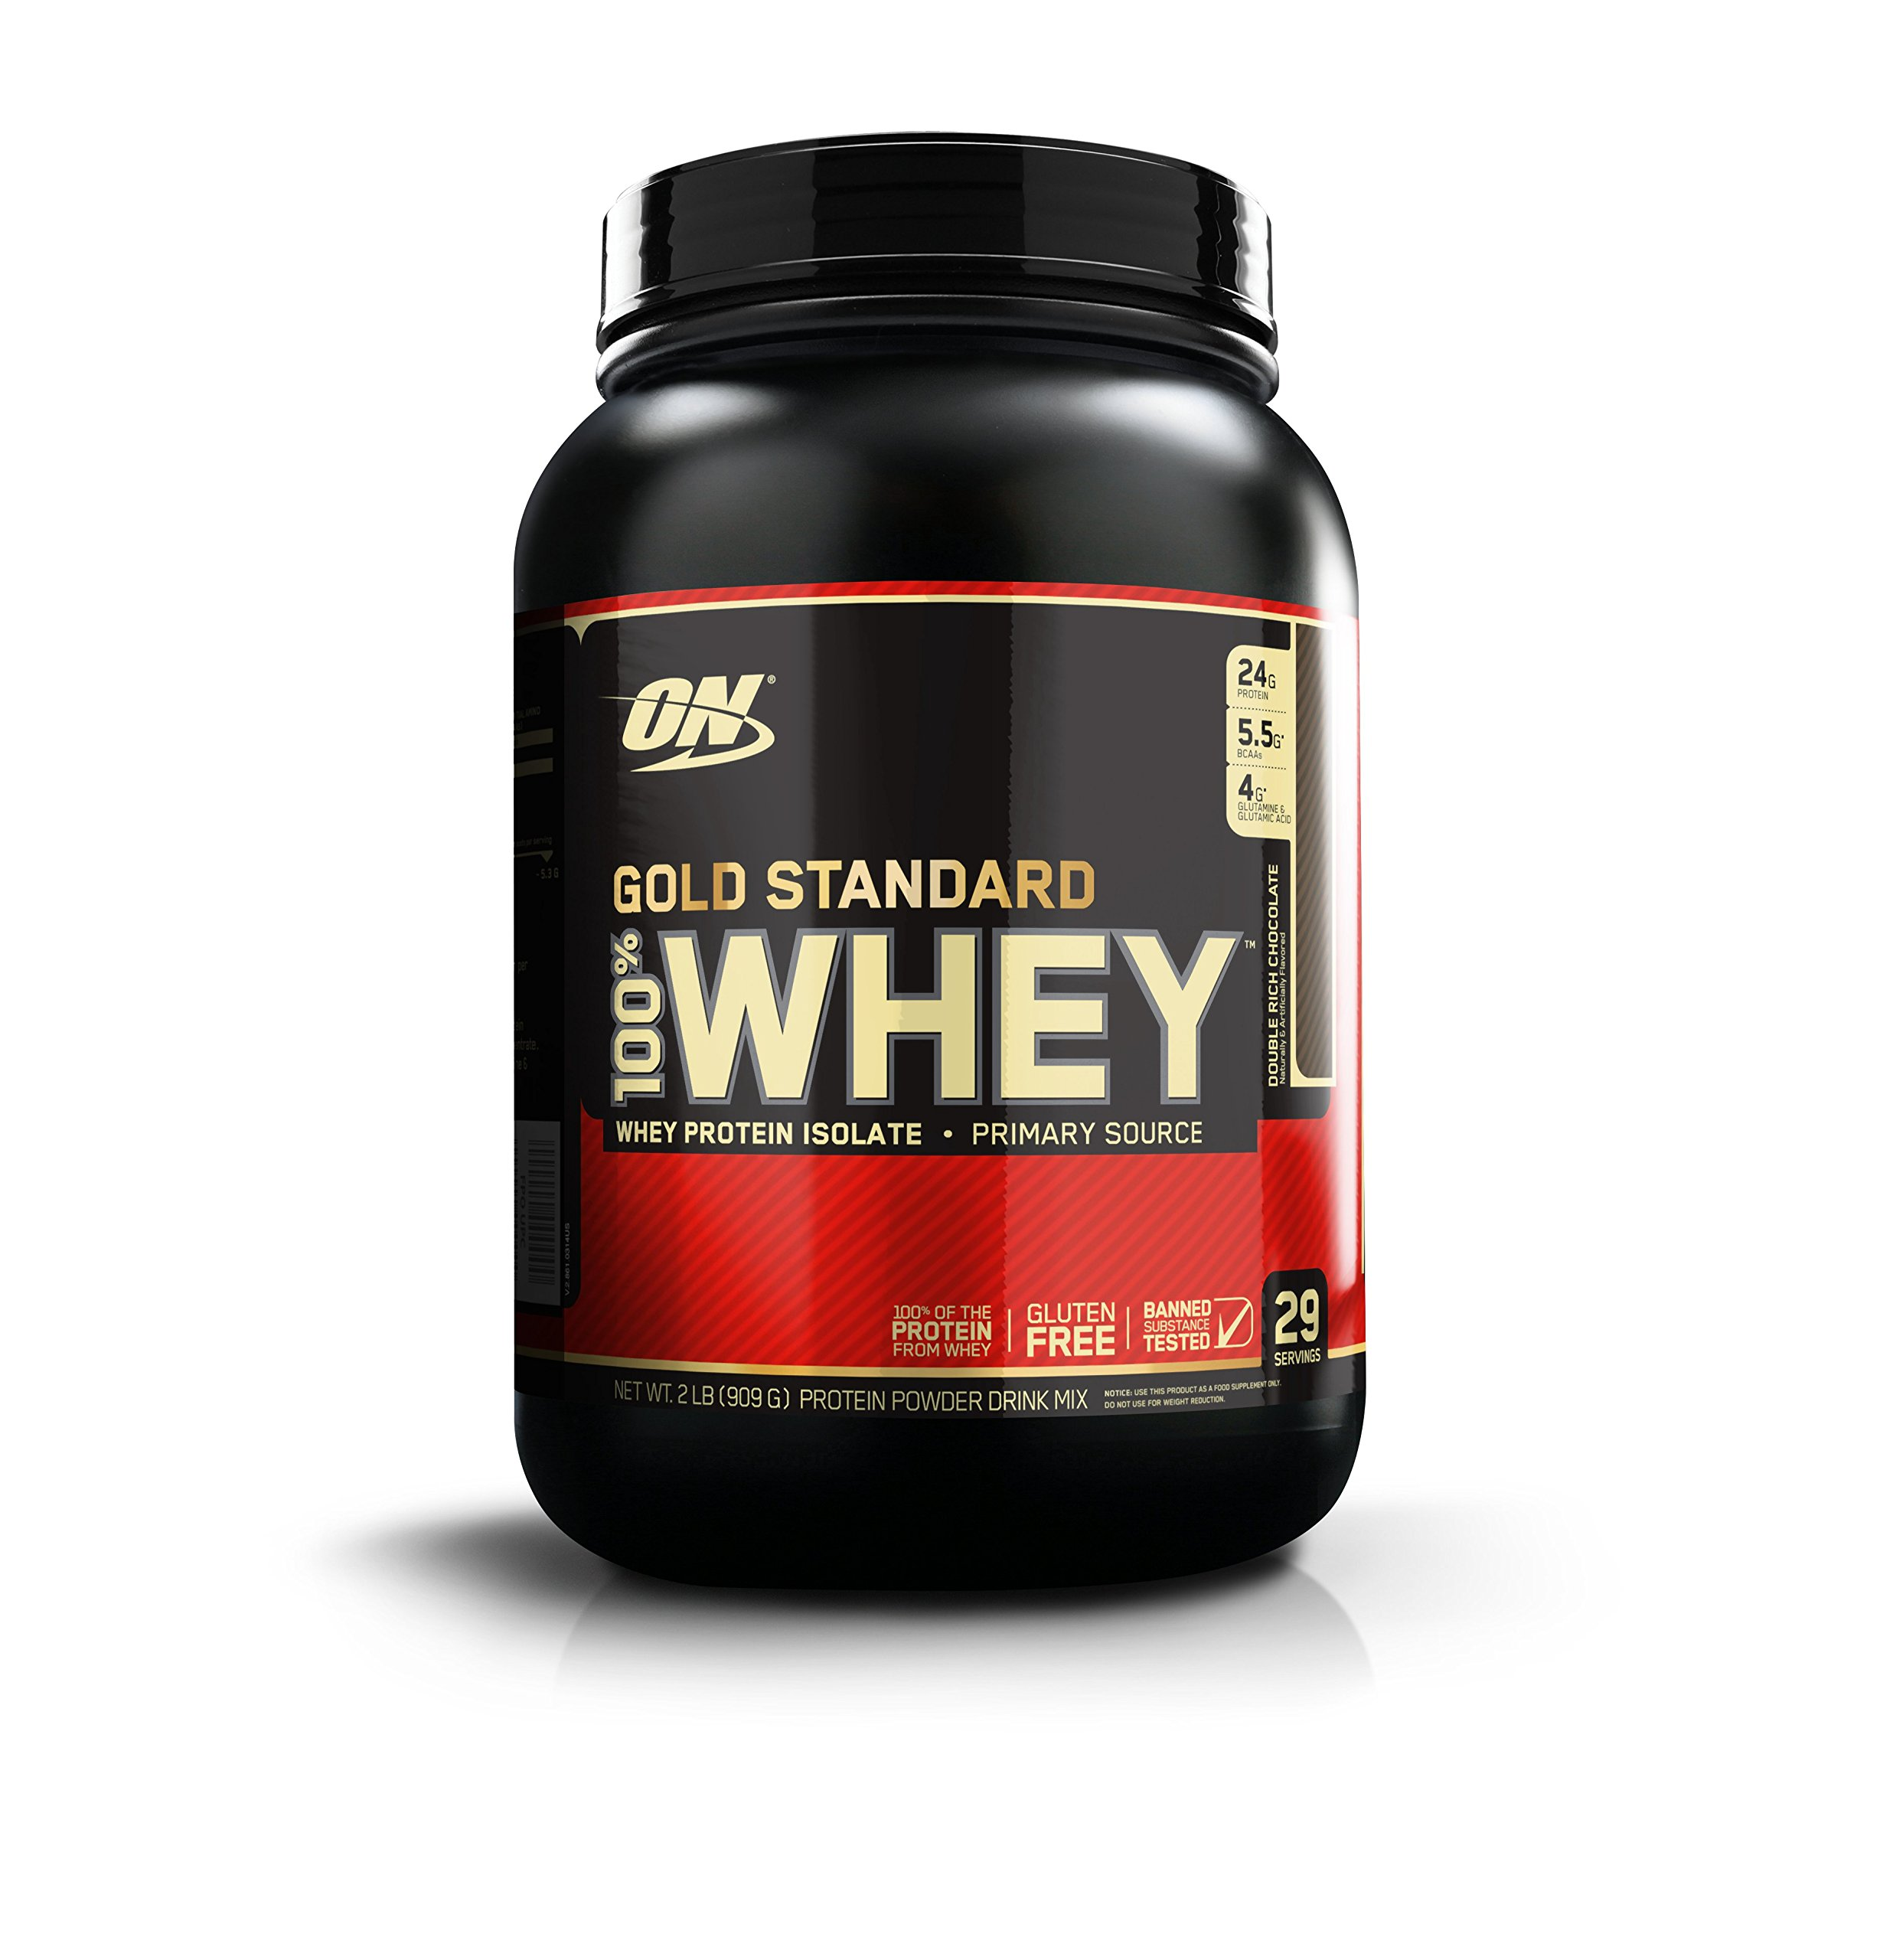 OPTIMUM NUTRITION GOLD STANDARD 100% Whey Protein Powder, Double Rich Chocolate, 2 Pound by Optimum Nutrition